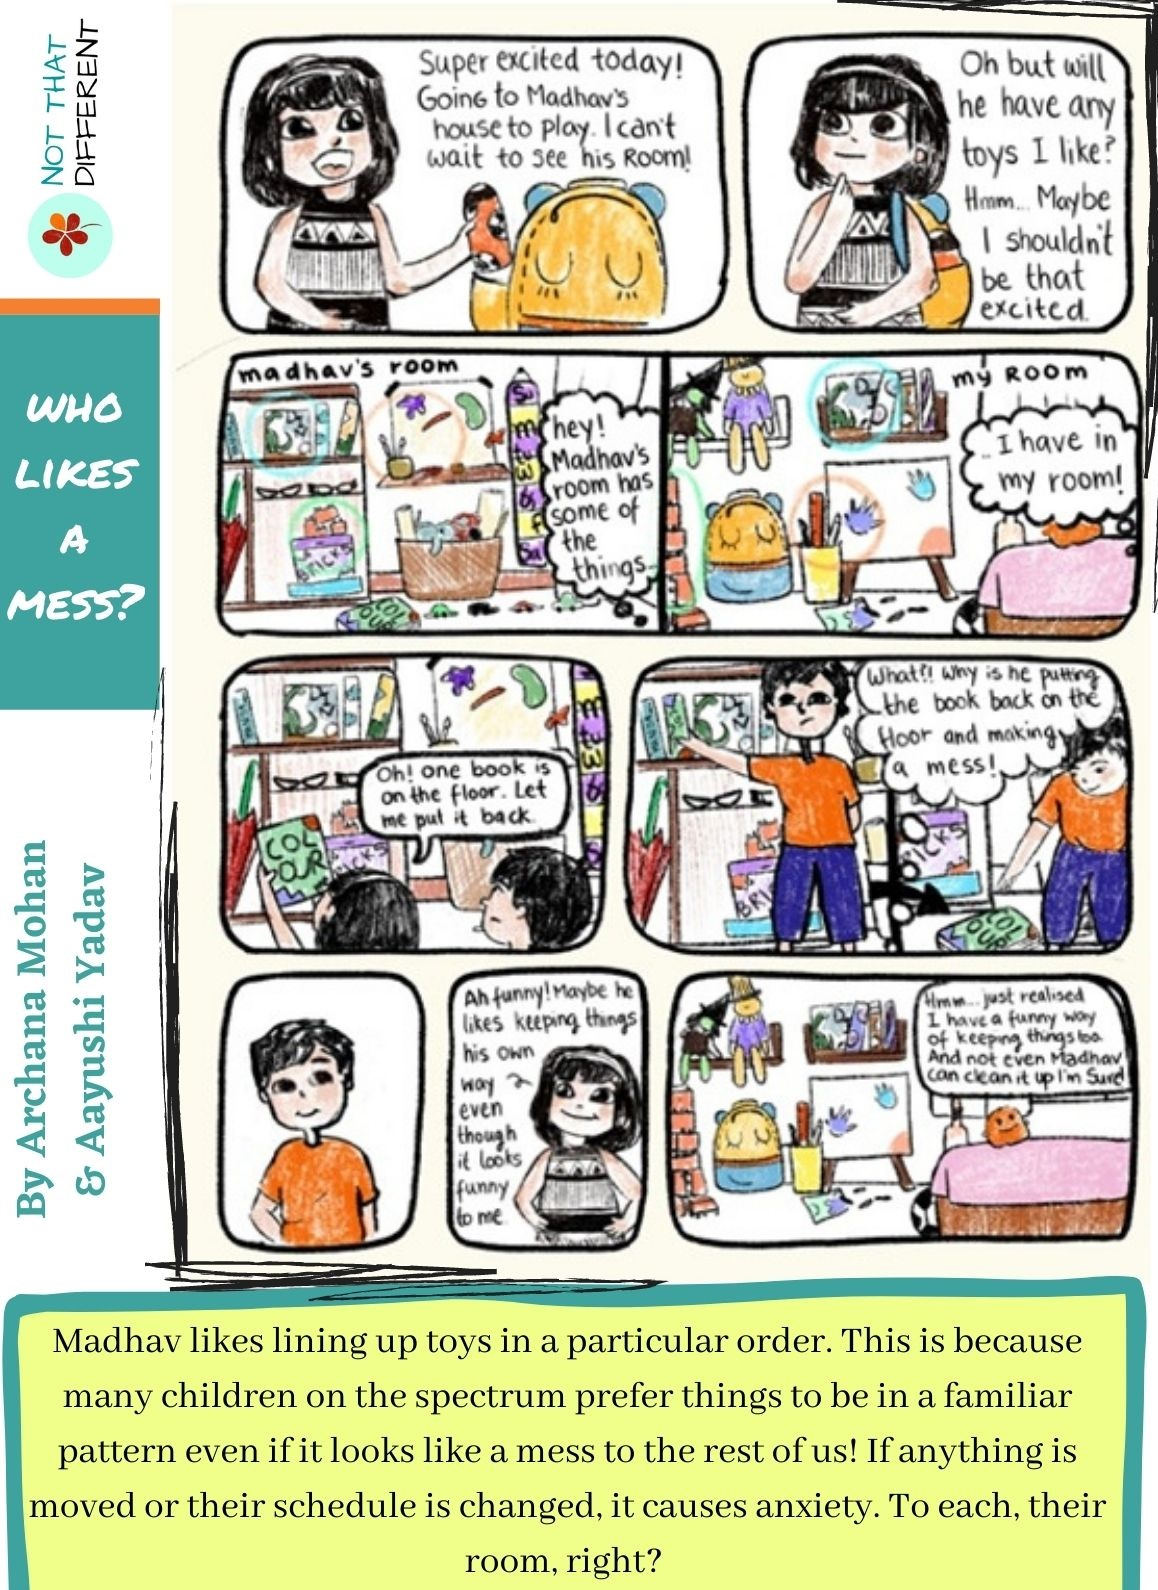 Who likes a mess? | Comic Strip on Autism